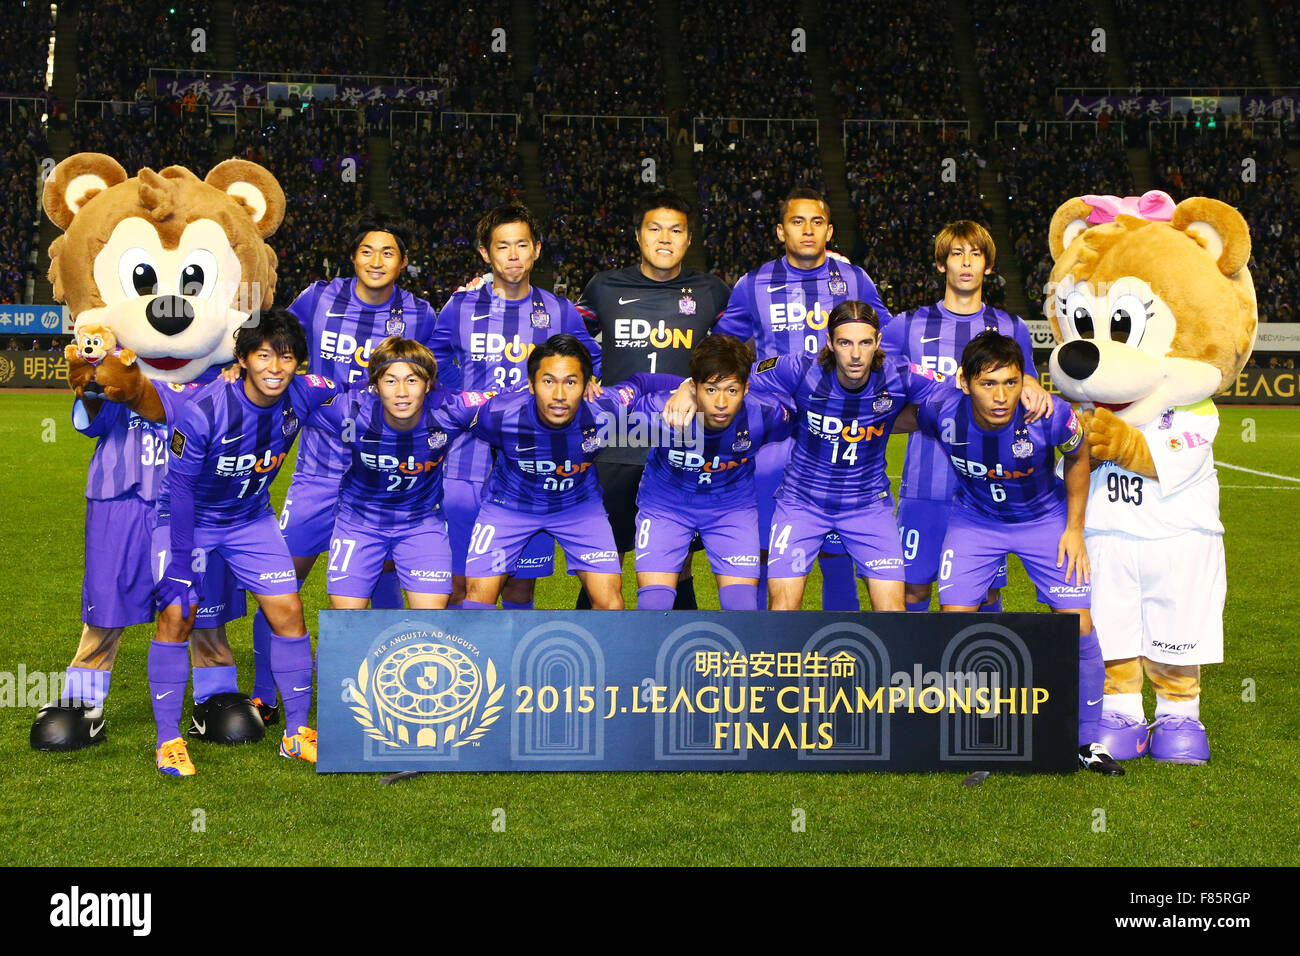 Hiroshima Japan 5th Dec 2015 Sanfrecce Hiroshima Team Group Line Stock Photo Alamy